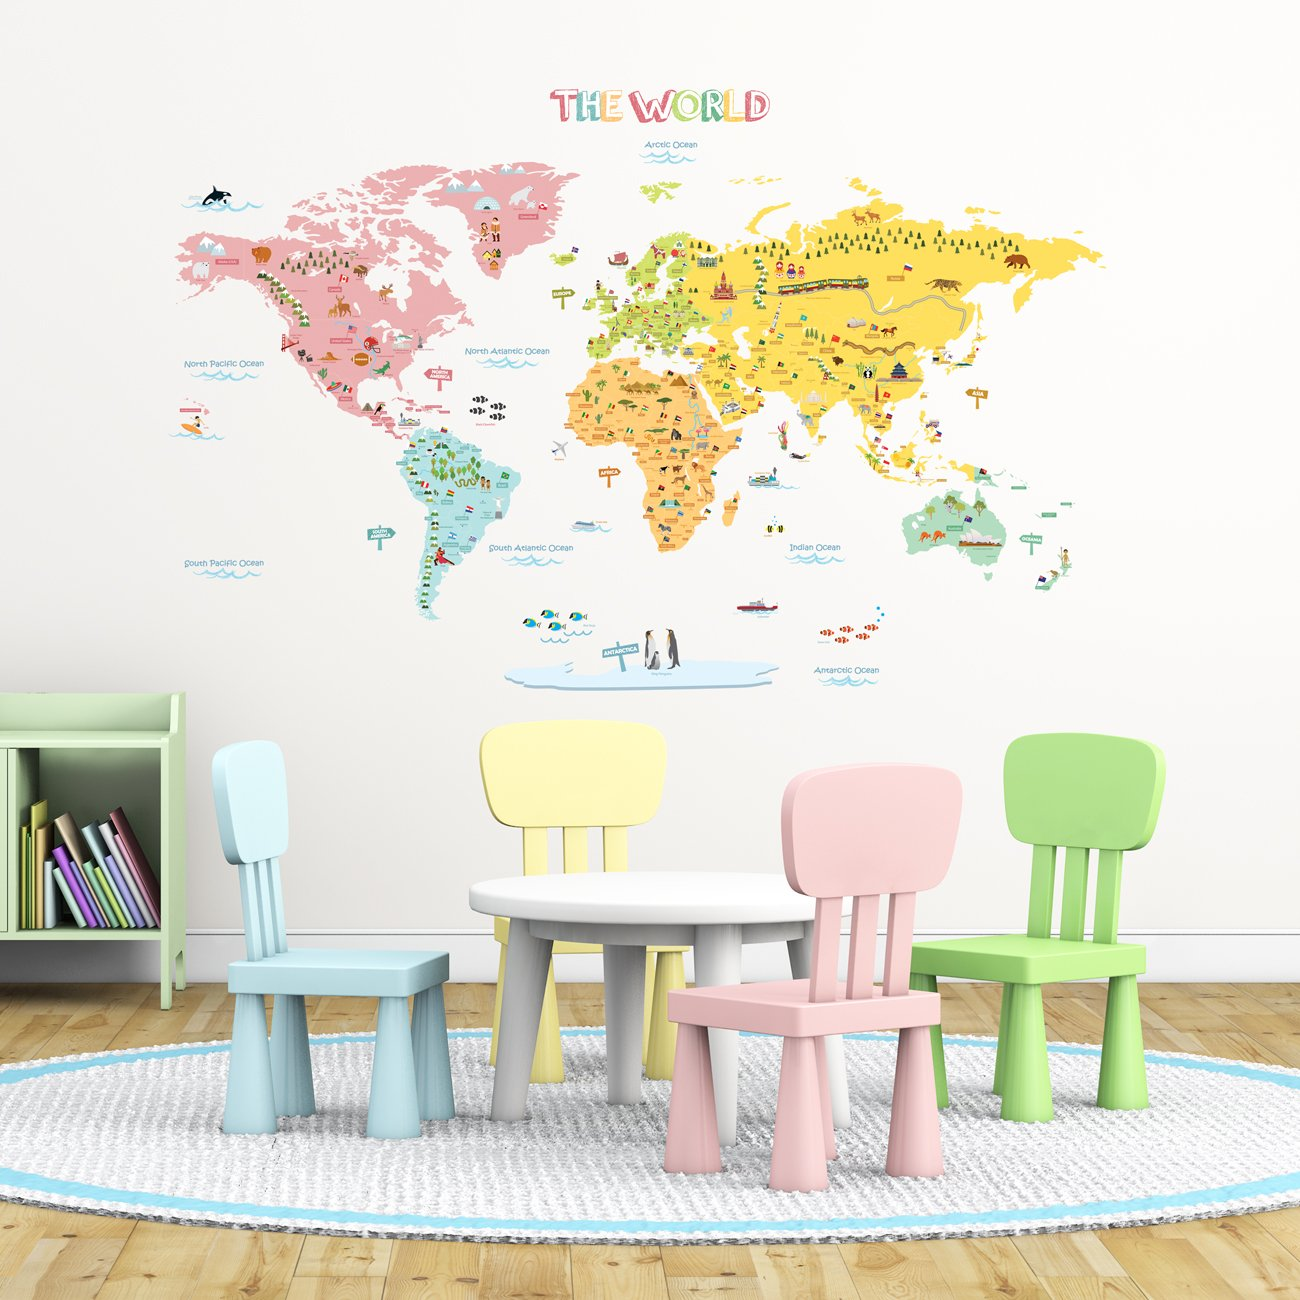 Amazon petit collage wall decal world map baby decowall dlt 1616n colourful world map kids wall decals wall stickers peel and stick removable gumiabroncs Choice Image